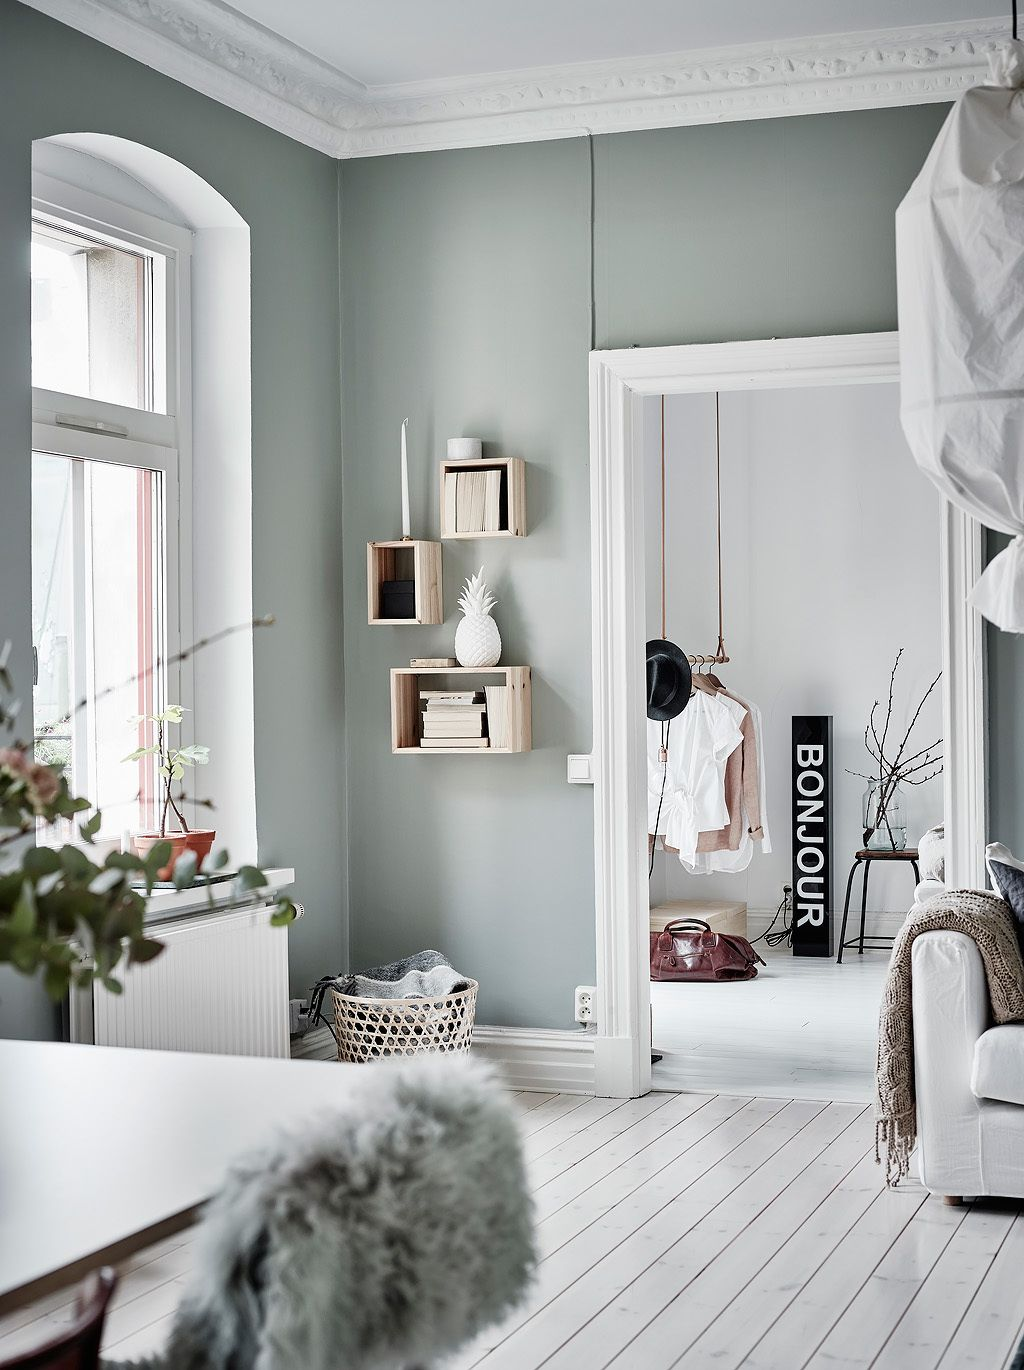 29+ Gorgeous Scandinavian Interior Design Ideas for Anyone Who Has a ...